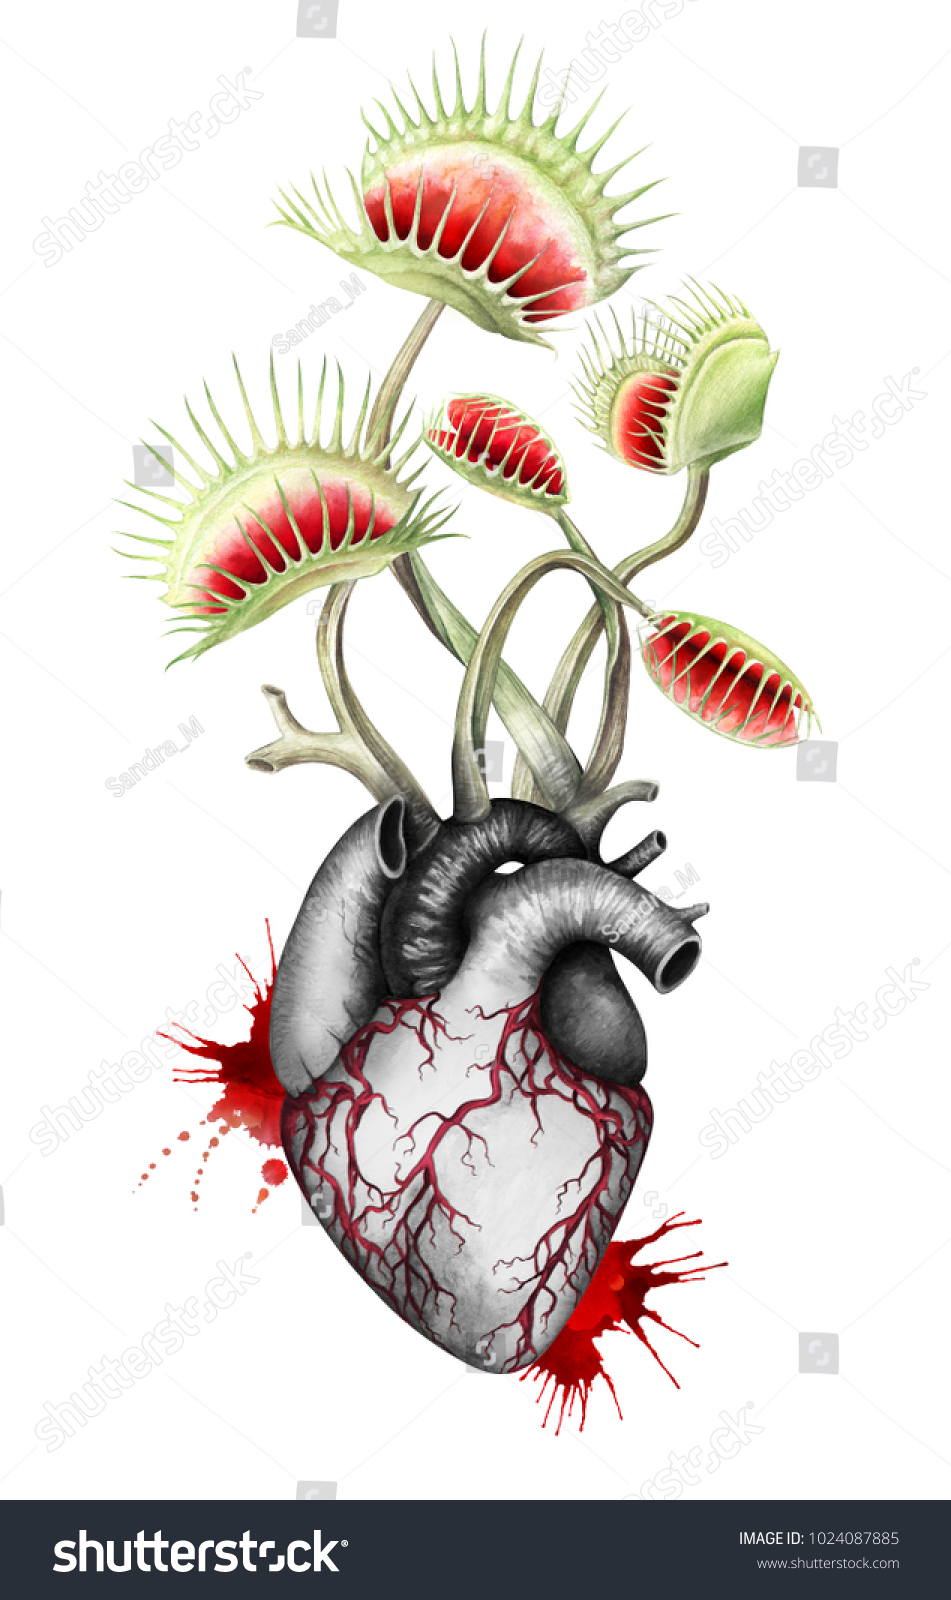 Hungry Black White Heart Fly Traps Stock Illustration 1024087885 ...